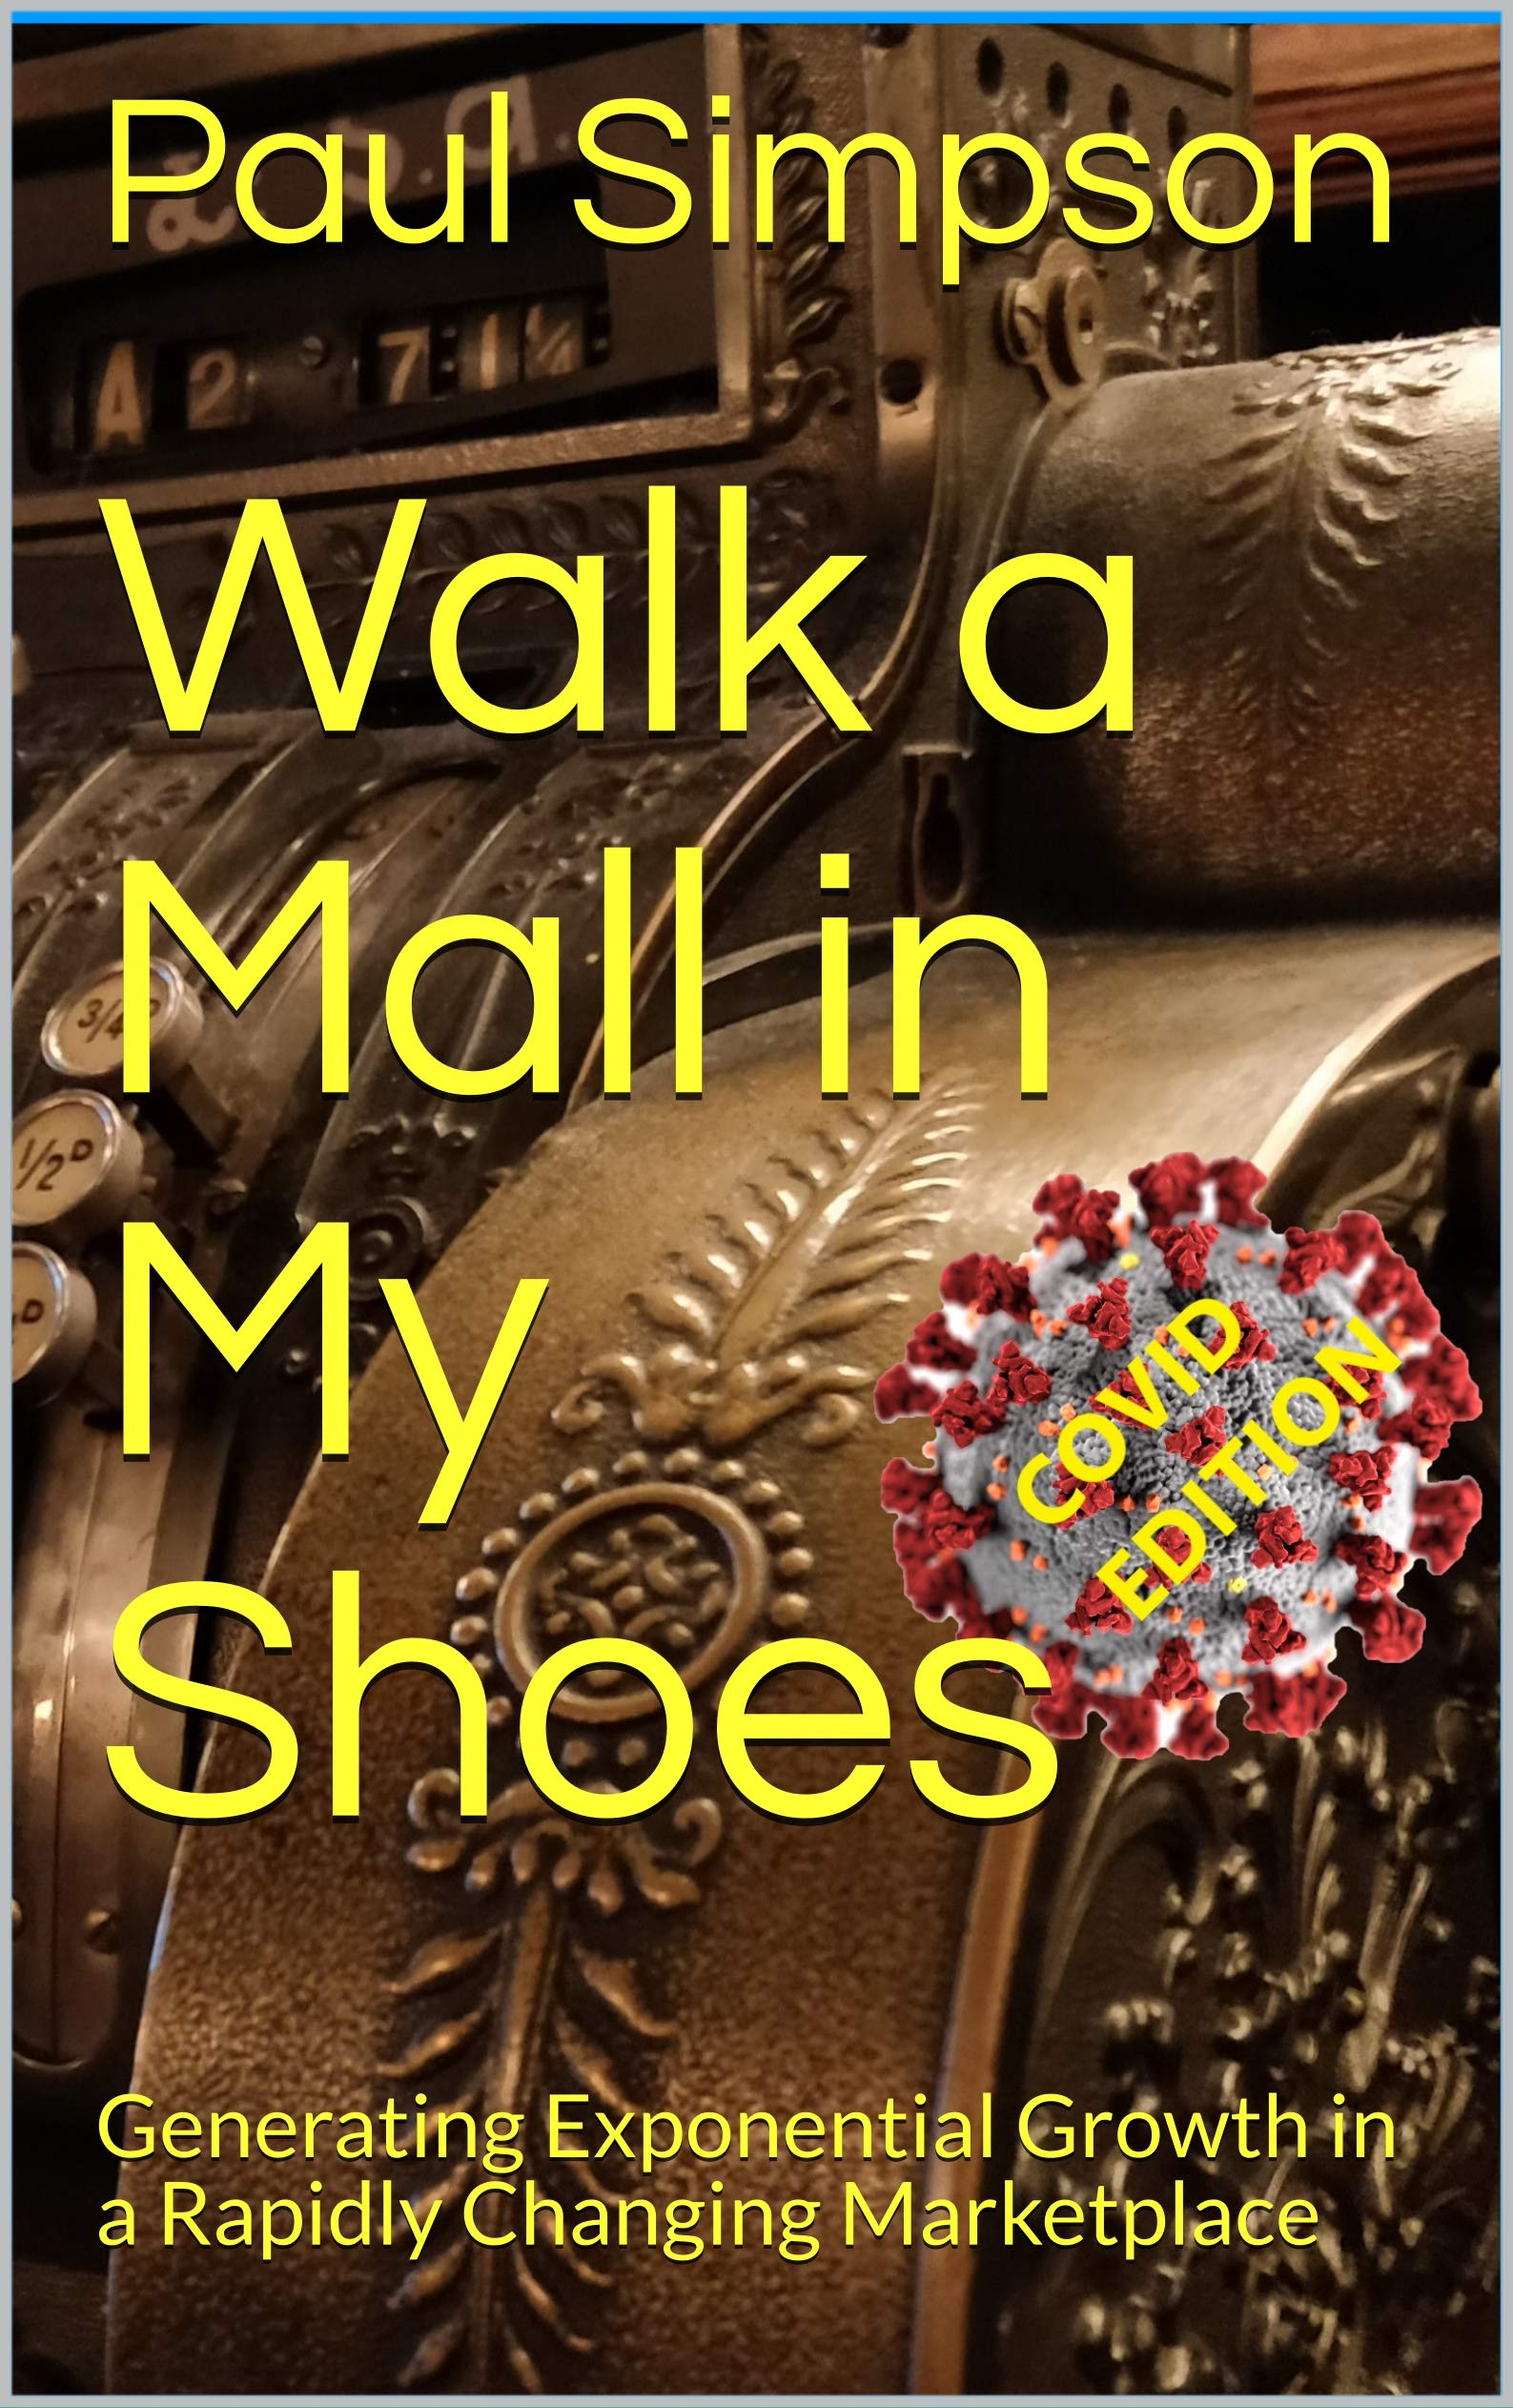 Walk a Mall in My Shoes: Generating Exponential Growth in a Rapidly Changing Marketplace